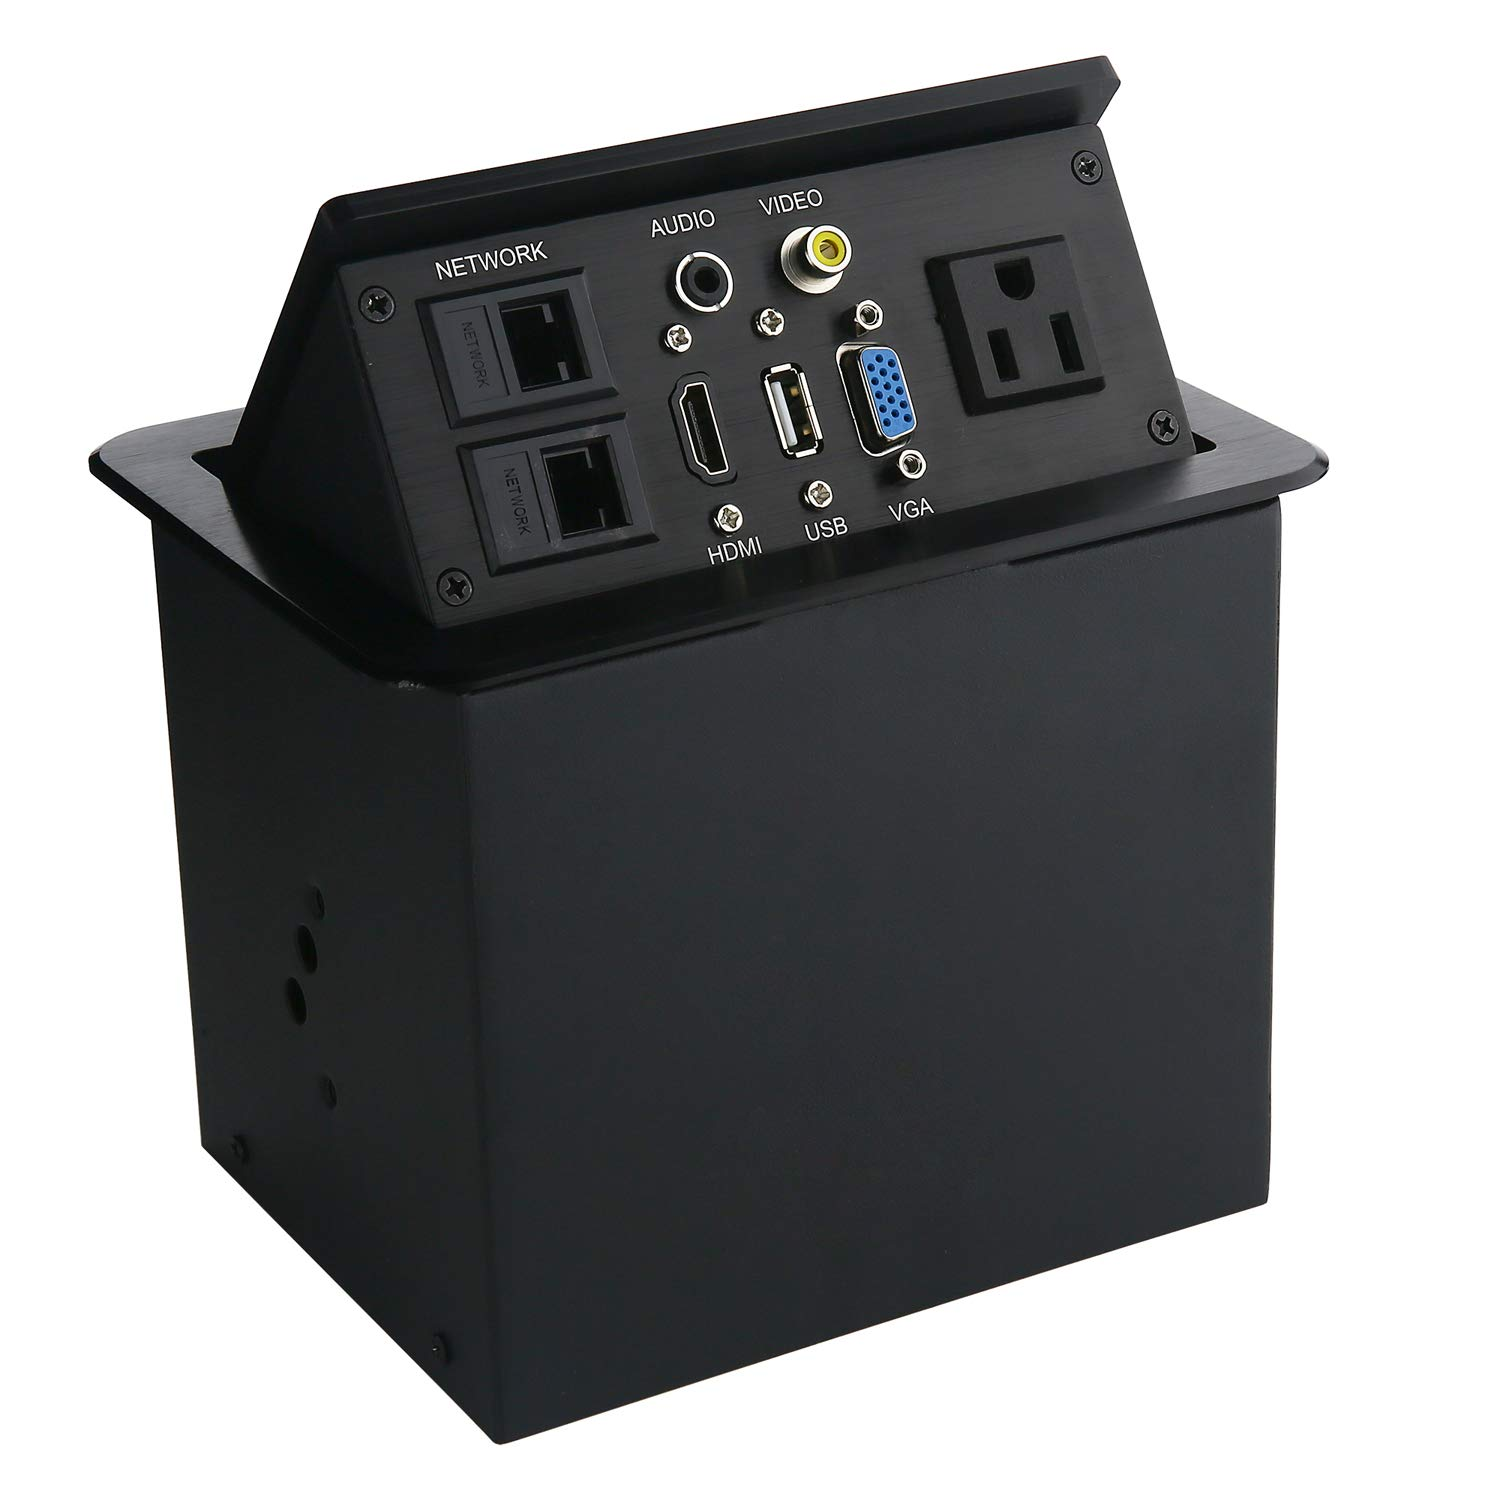 Pop Up Desk Outlet Date Center, Multimedia Information Panel Outlet with HDMI, VGA, USB, AUDIO, NETWORK, VIDEO